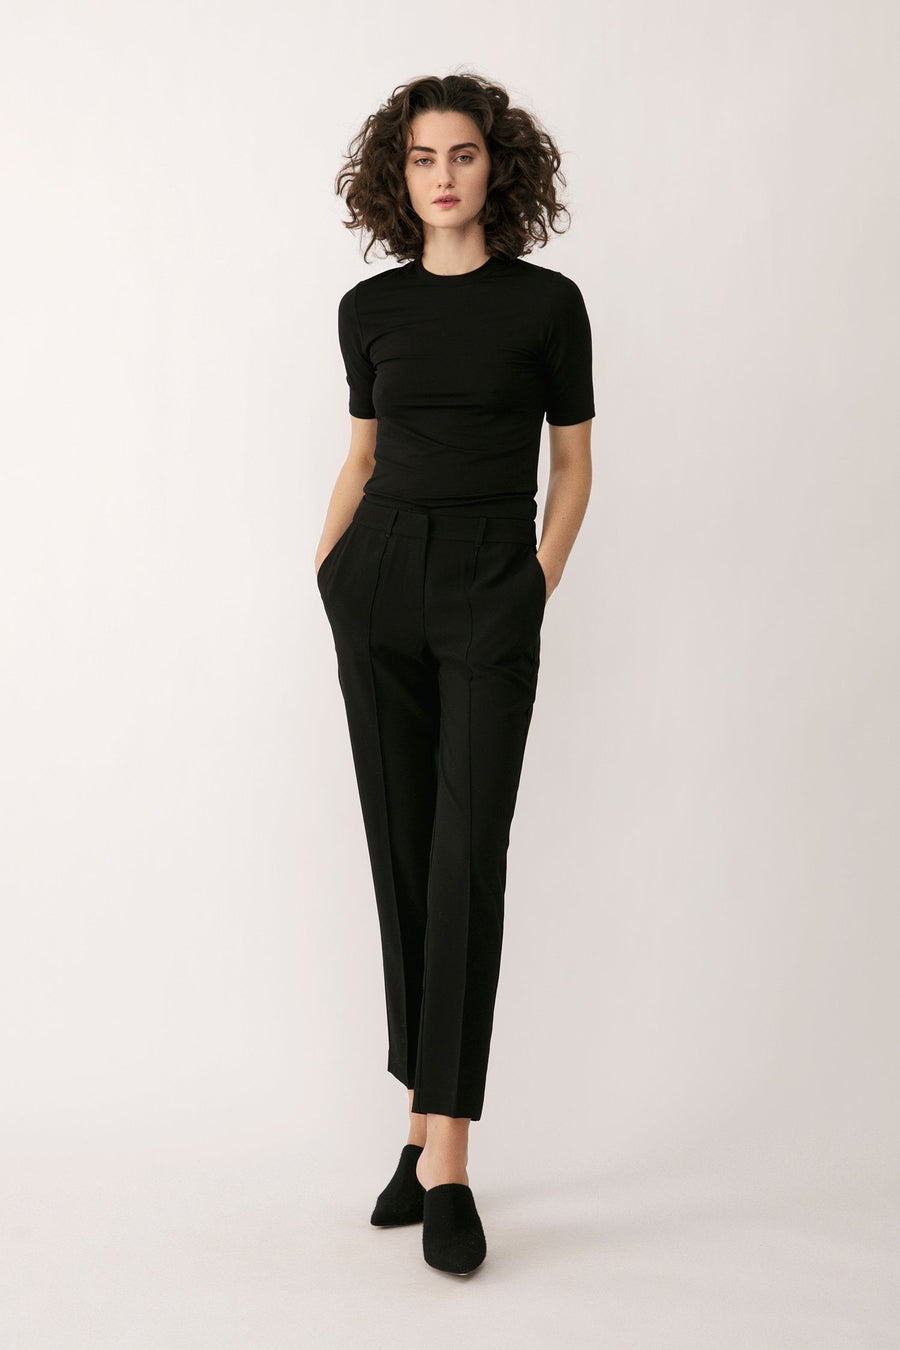 BLEECKER TROUSERS - BLACK Trousers Stylein